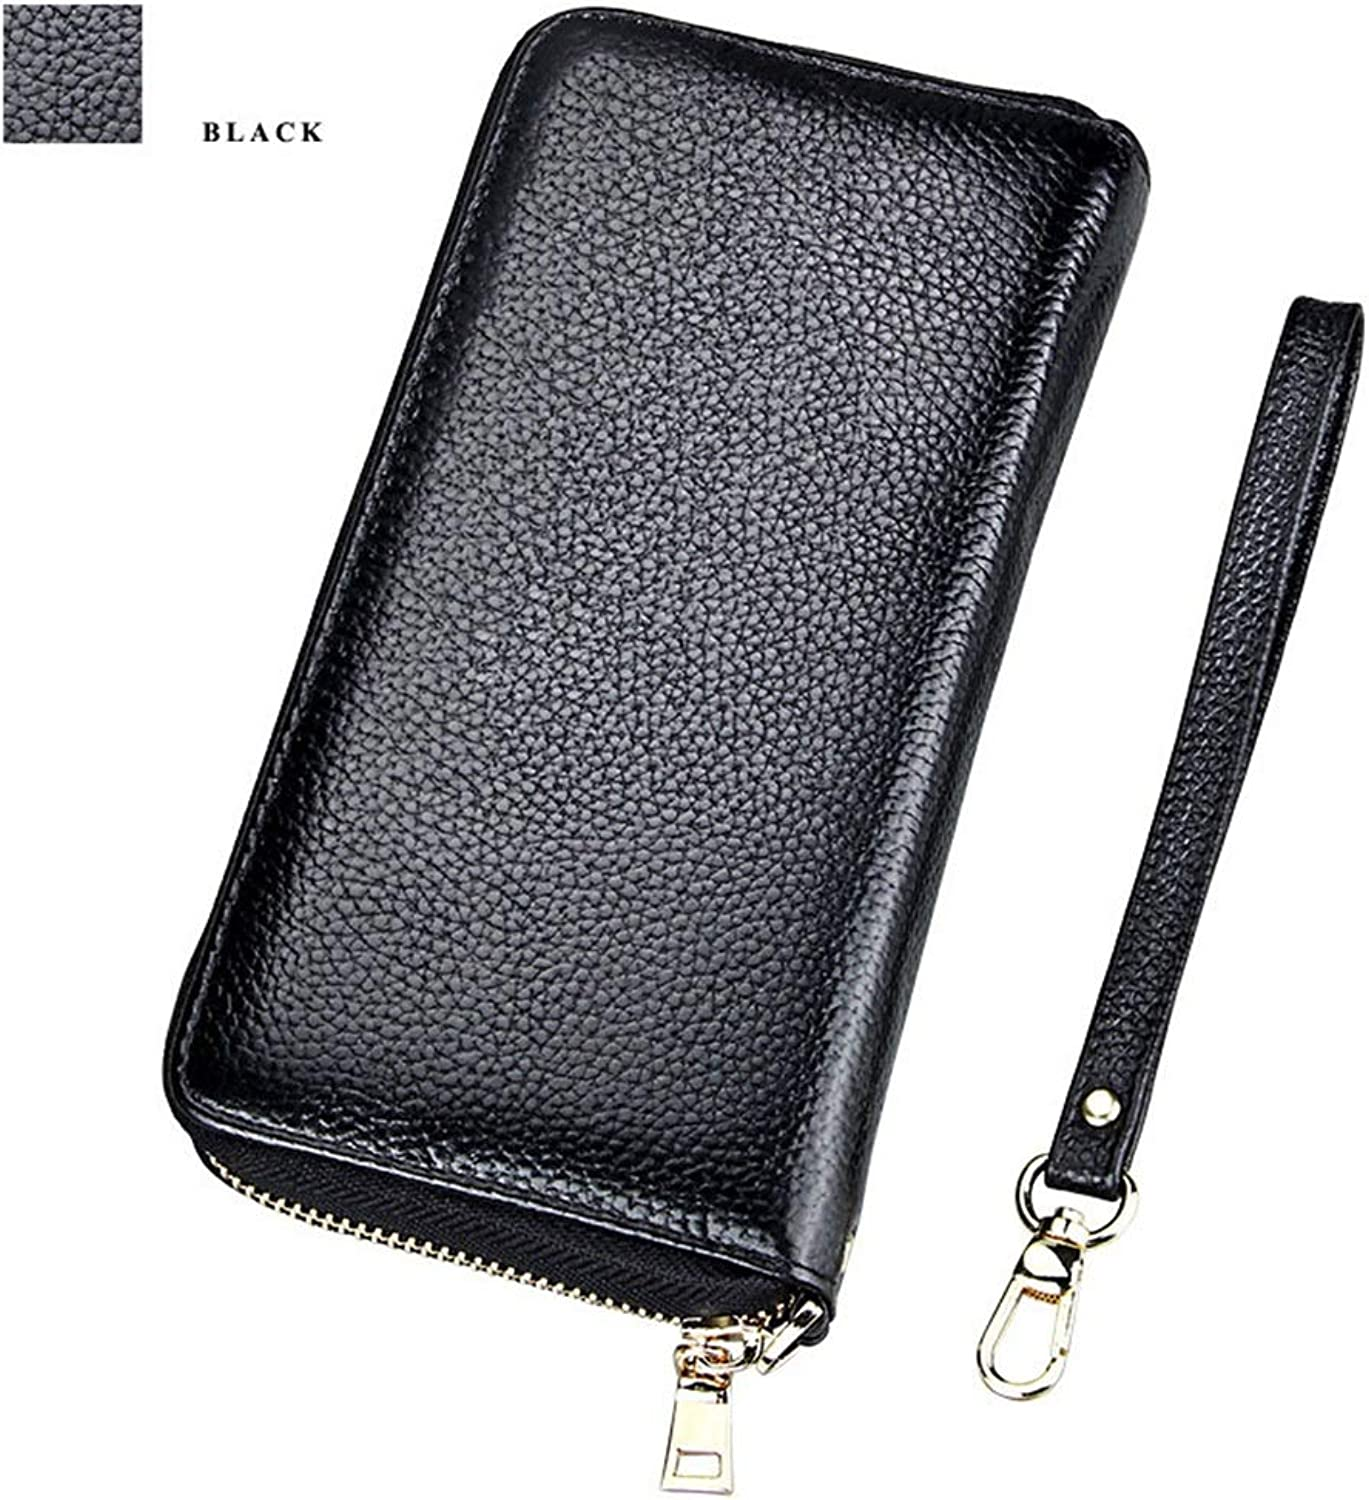 Sturdy New Women's Wallet Genuine Leather Long Bifold RFID Blocking Card Holder Large Capacity (color   Black)